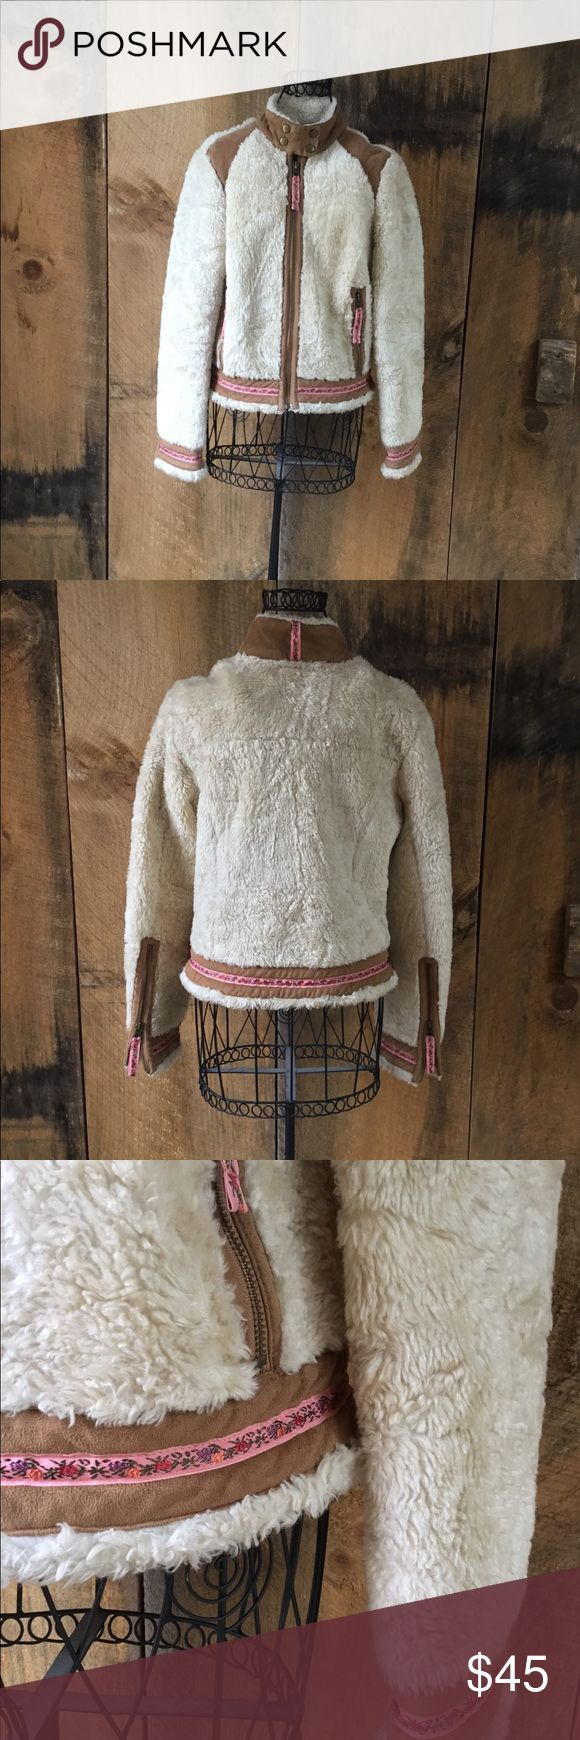 Free People Shag Faux Shearling Coat Free People sherpa shag coat. Beautiful ivory shag with tan faux shearling. Light pink embroidery details. Zip front. Women's size XS  ALL SALES ARE FINAL. PLEASE ASK ANY QUESTIONS PRIOR TO PURCHASING. Free People Jackets & Coats